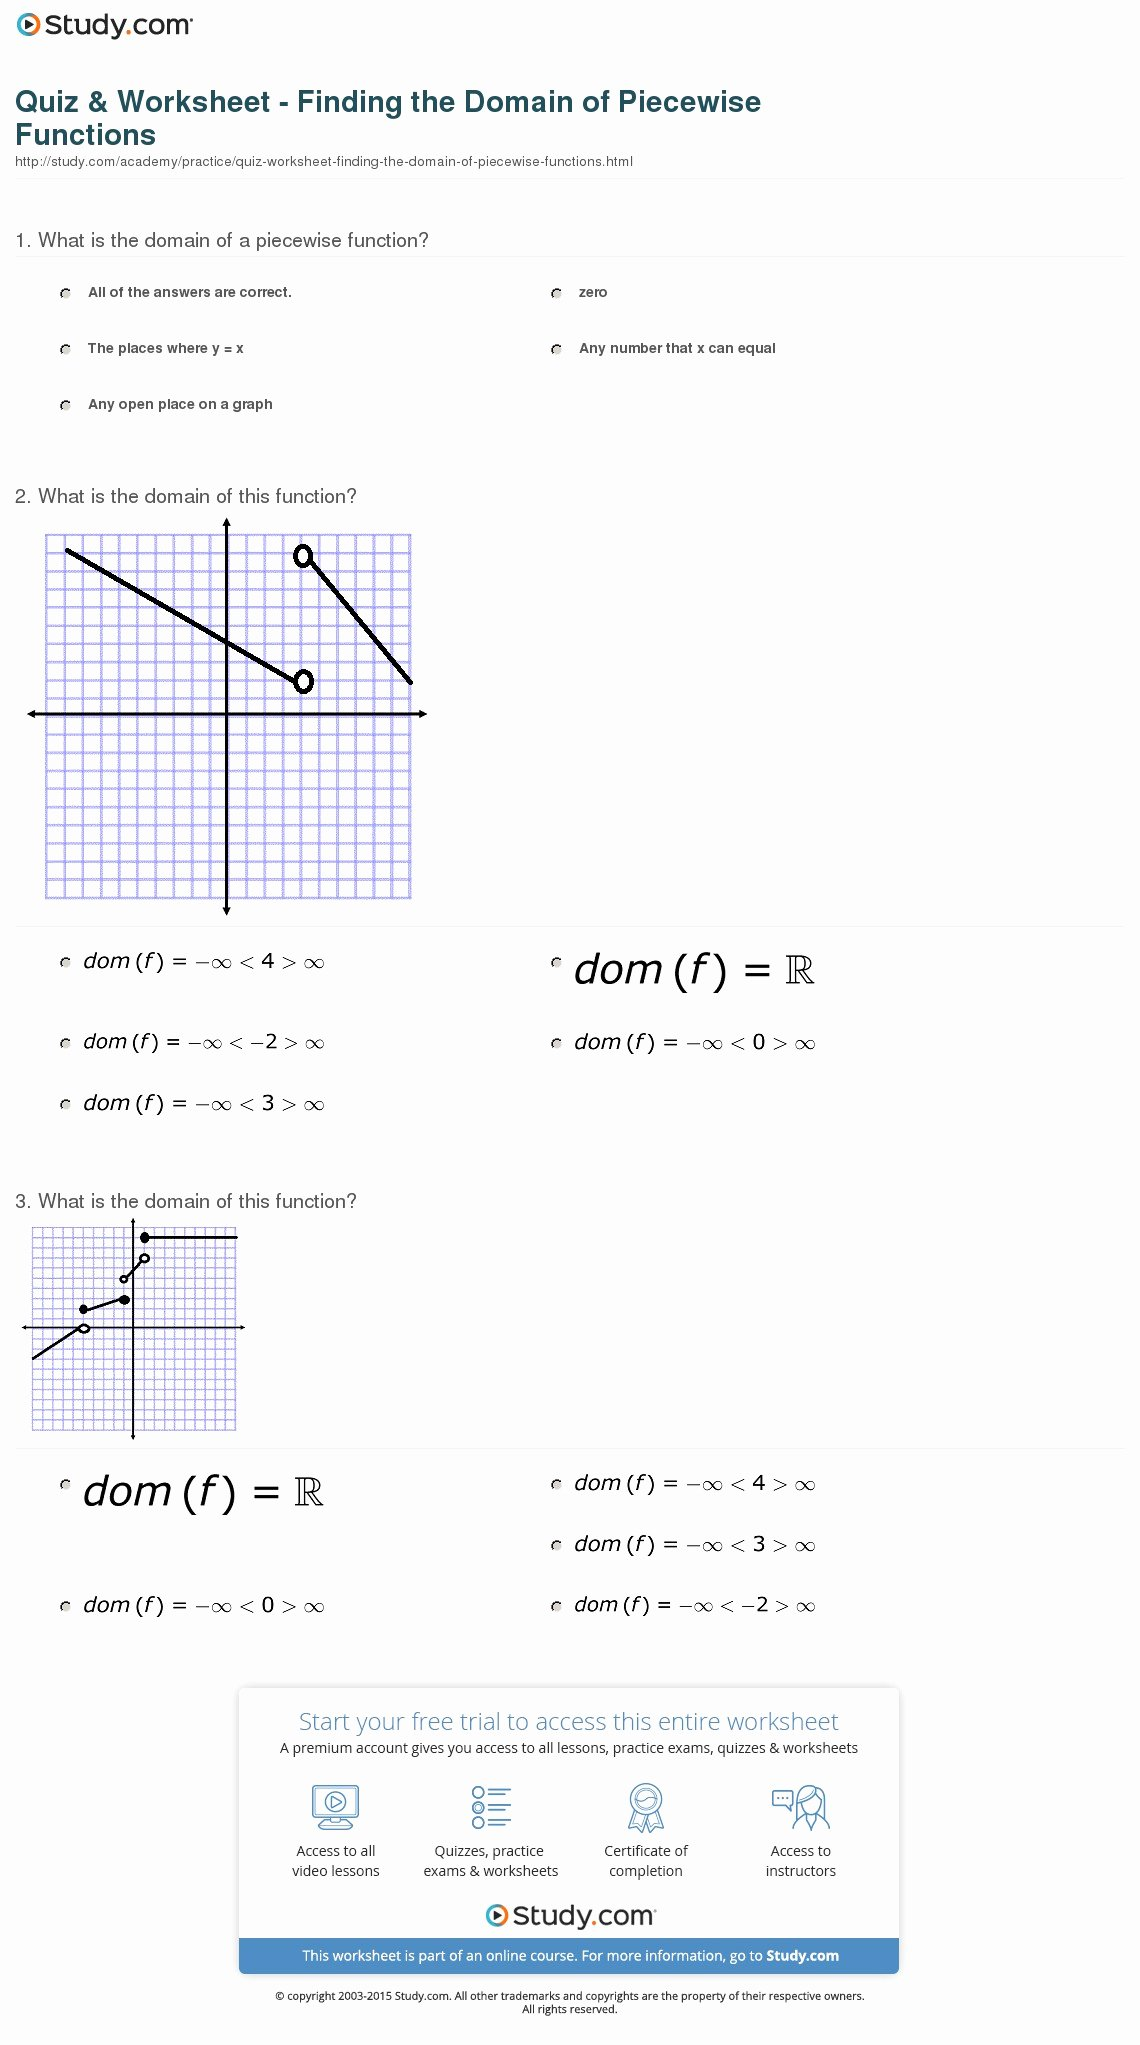 Worksheet Piecewise Functions Answer Key Awesome Quiz & Worksheet Finding the Domain Of Piecewise